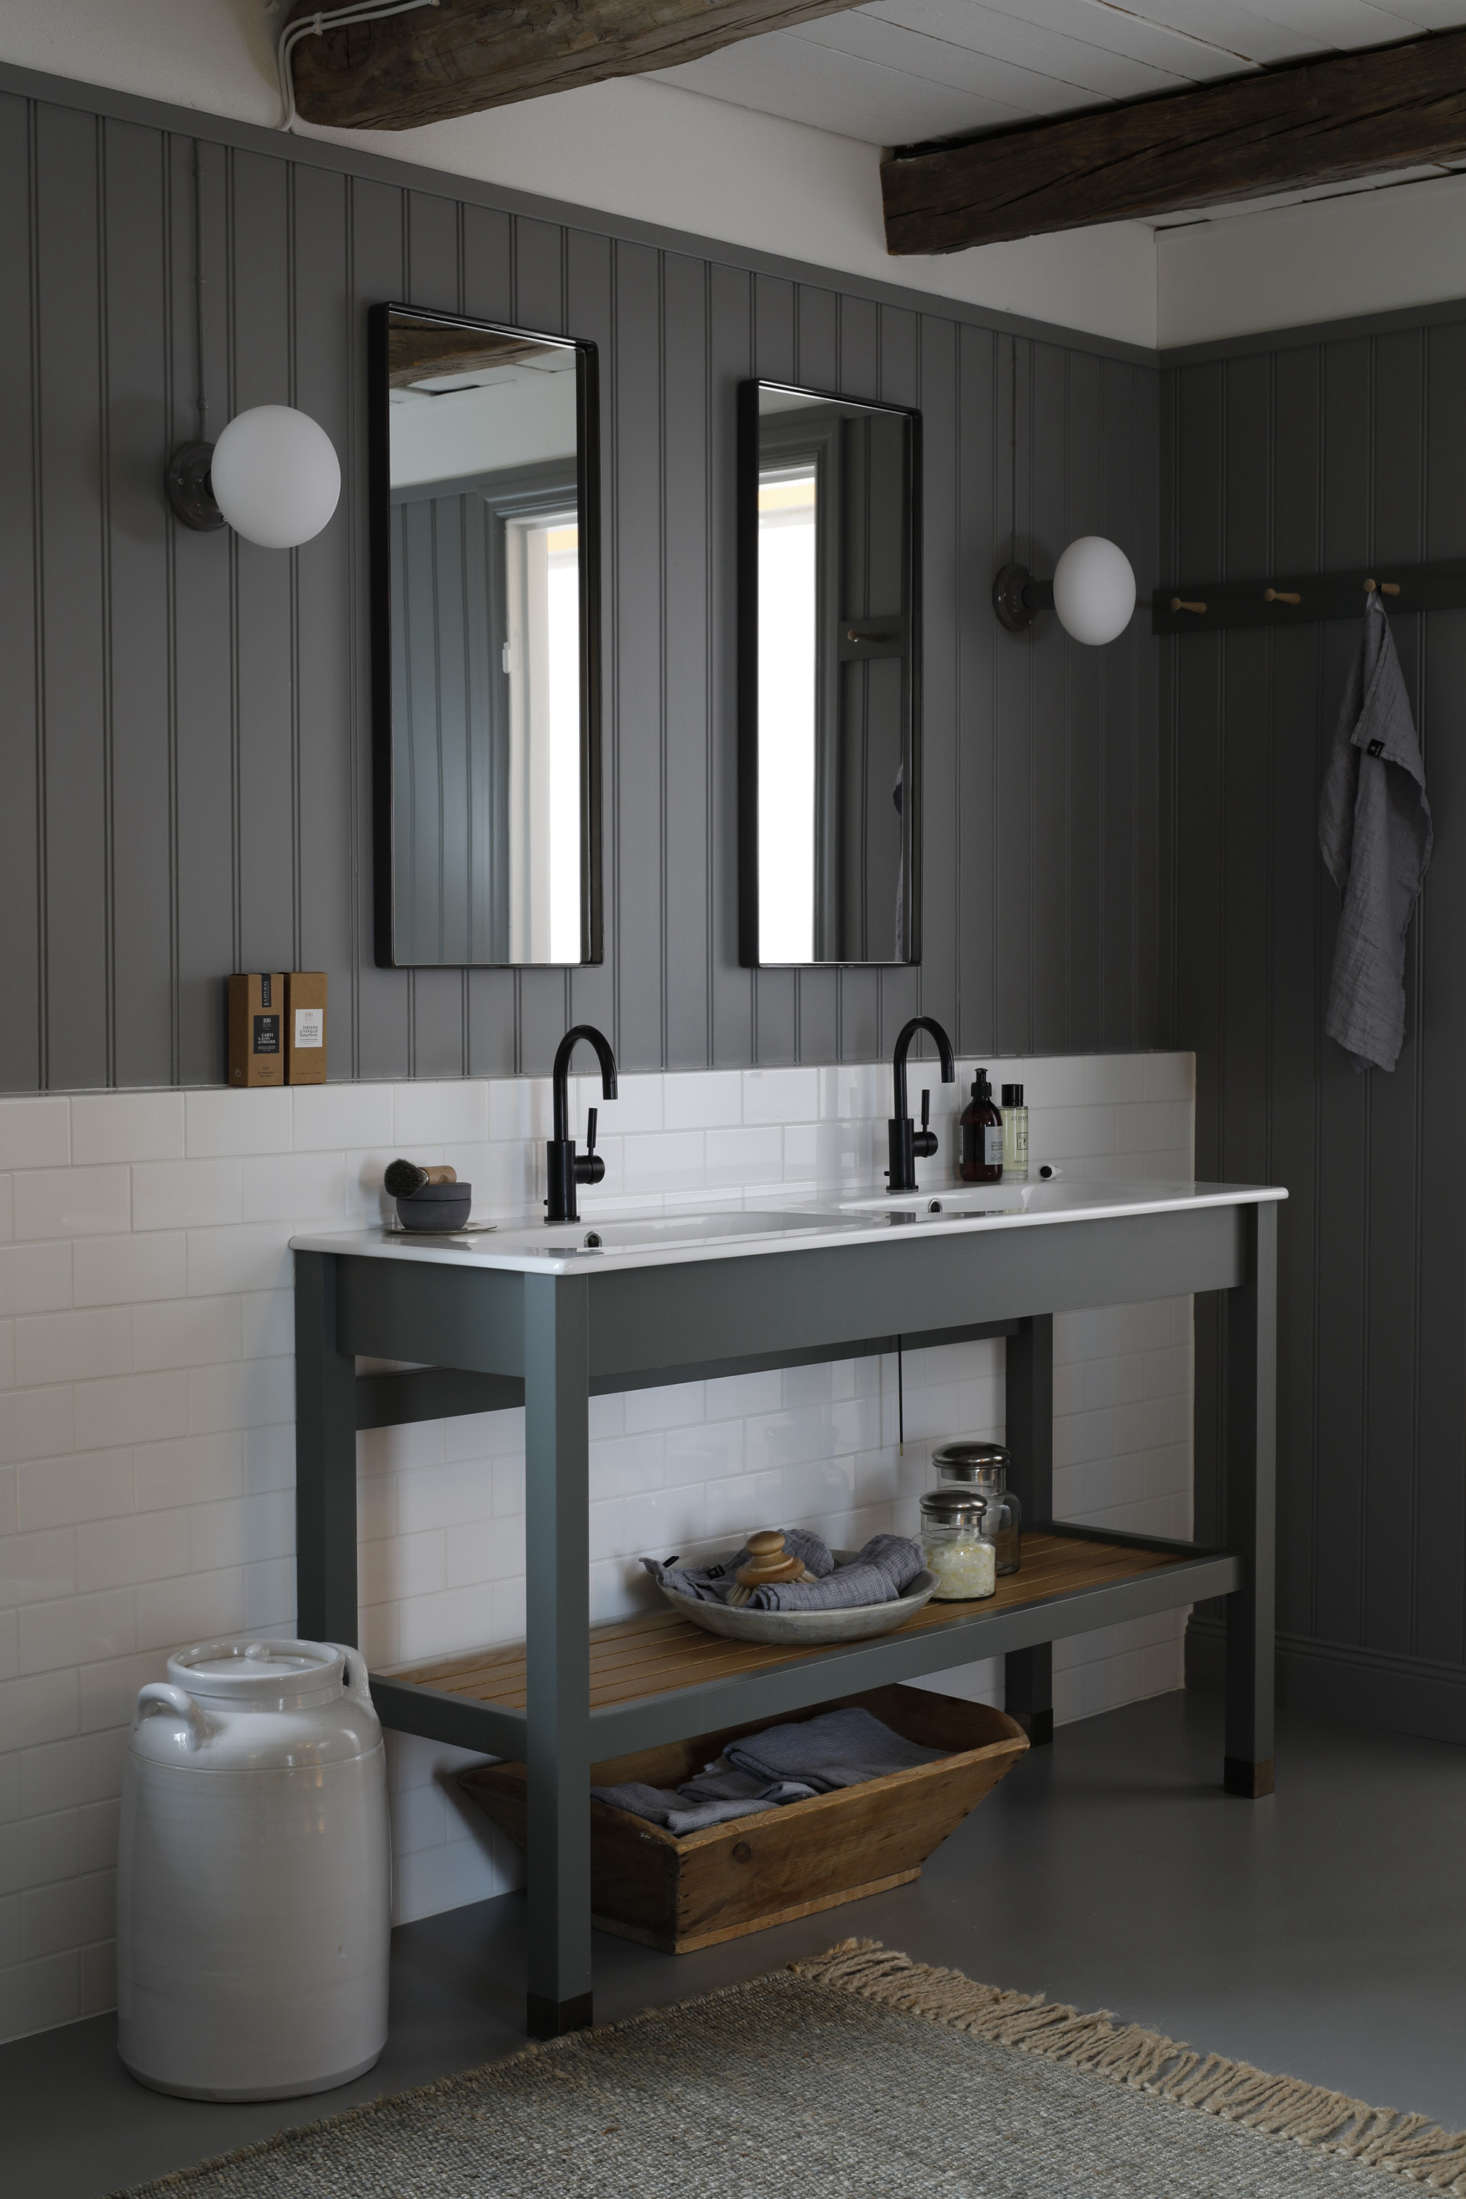 Italian sinks with Dornbracht Tara faucets are set in a Kvänum vanity with a slatted storage shelf. Note the subway-tiled backsplash against beadboard-paneling in a warm gray from Norwegian paint company Jotun (NCS code 650